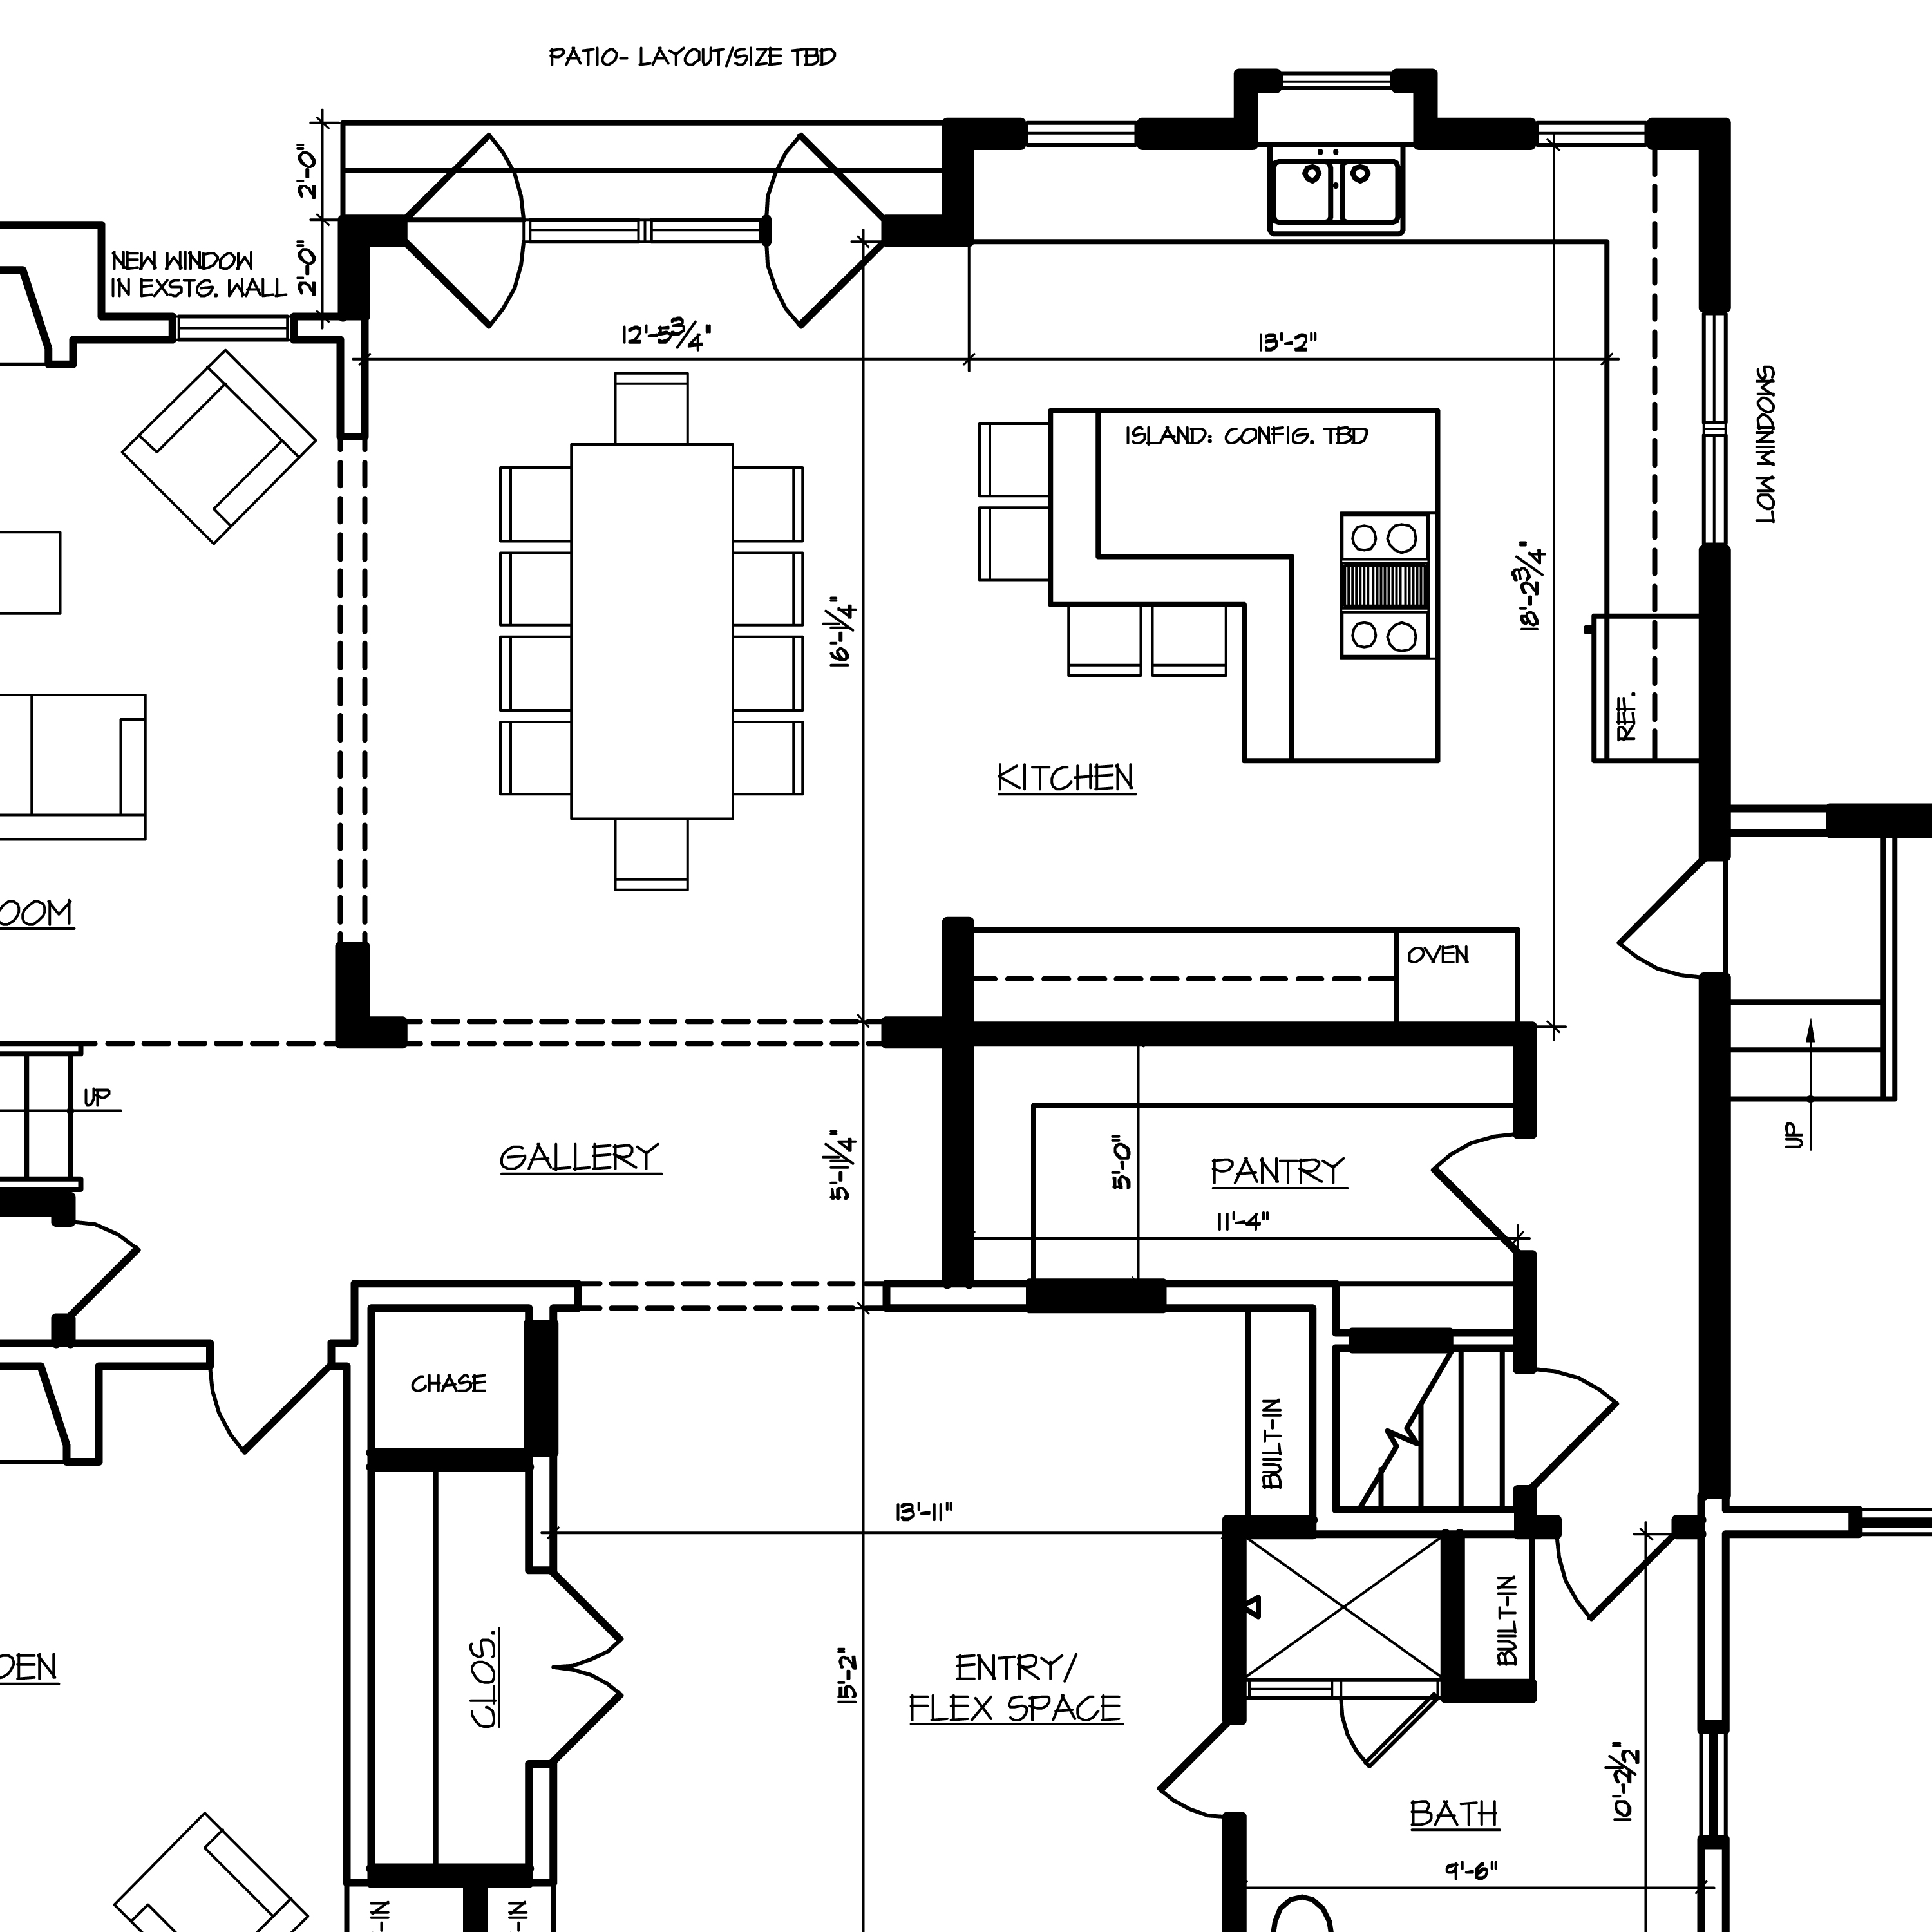 House architectural drawing at getdrawings free for personal